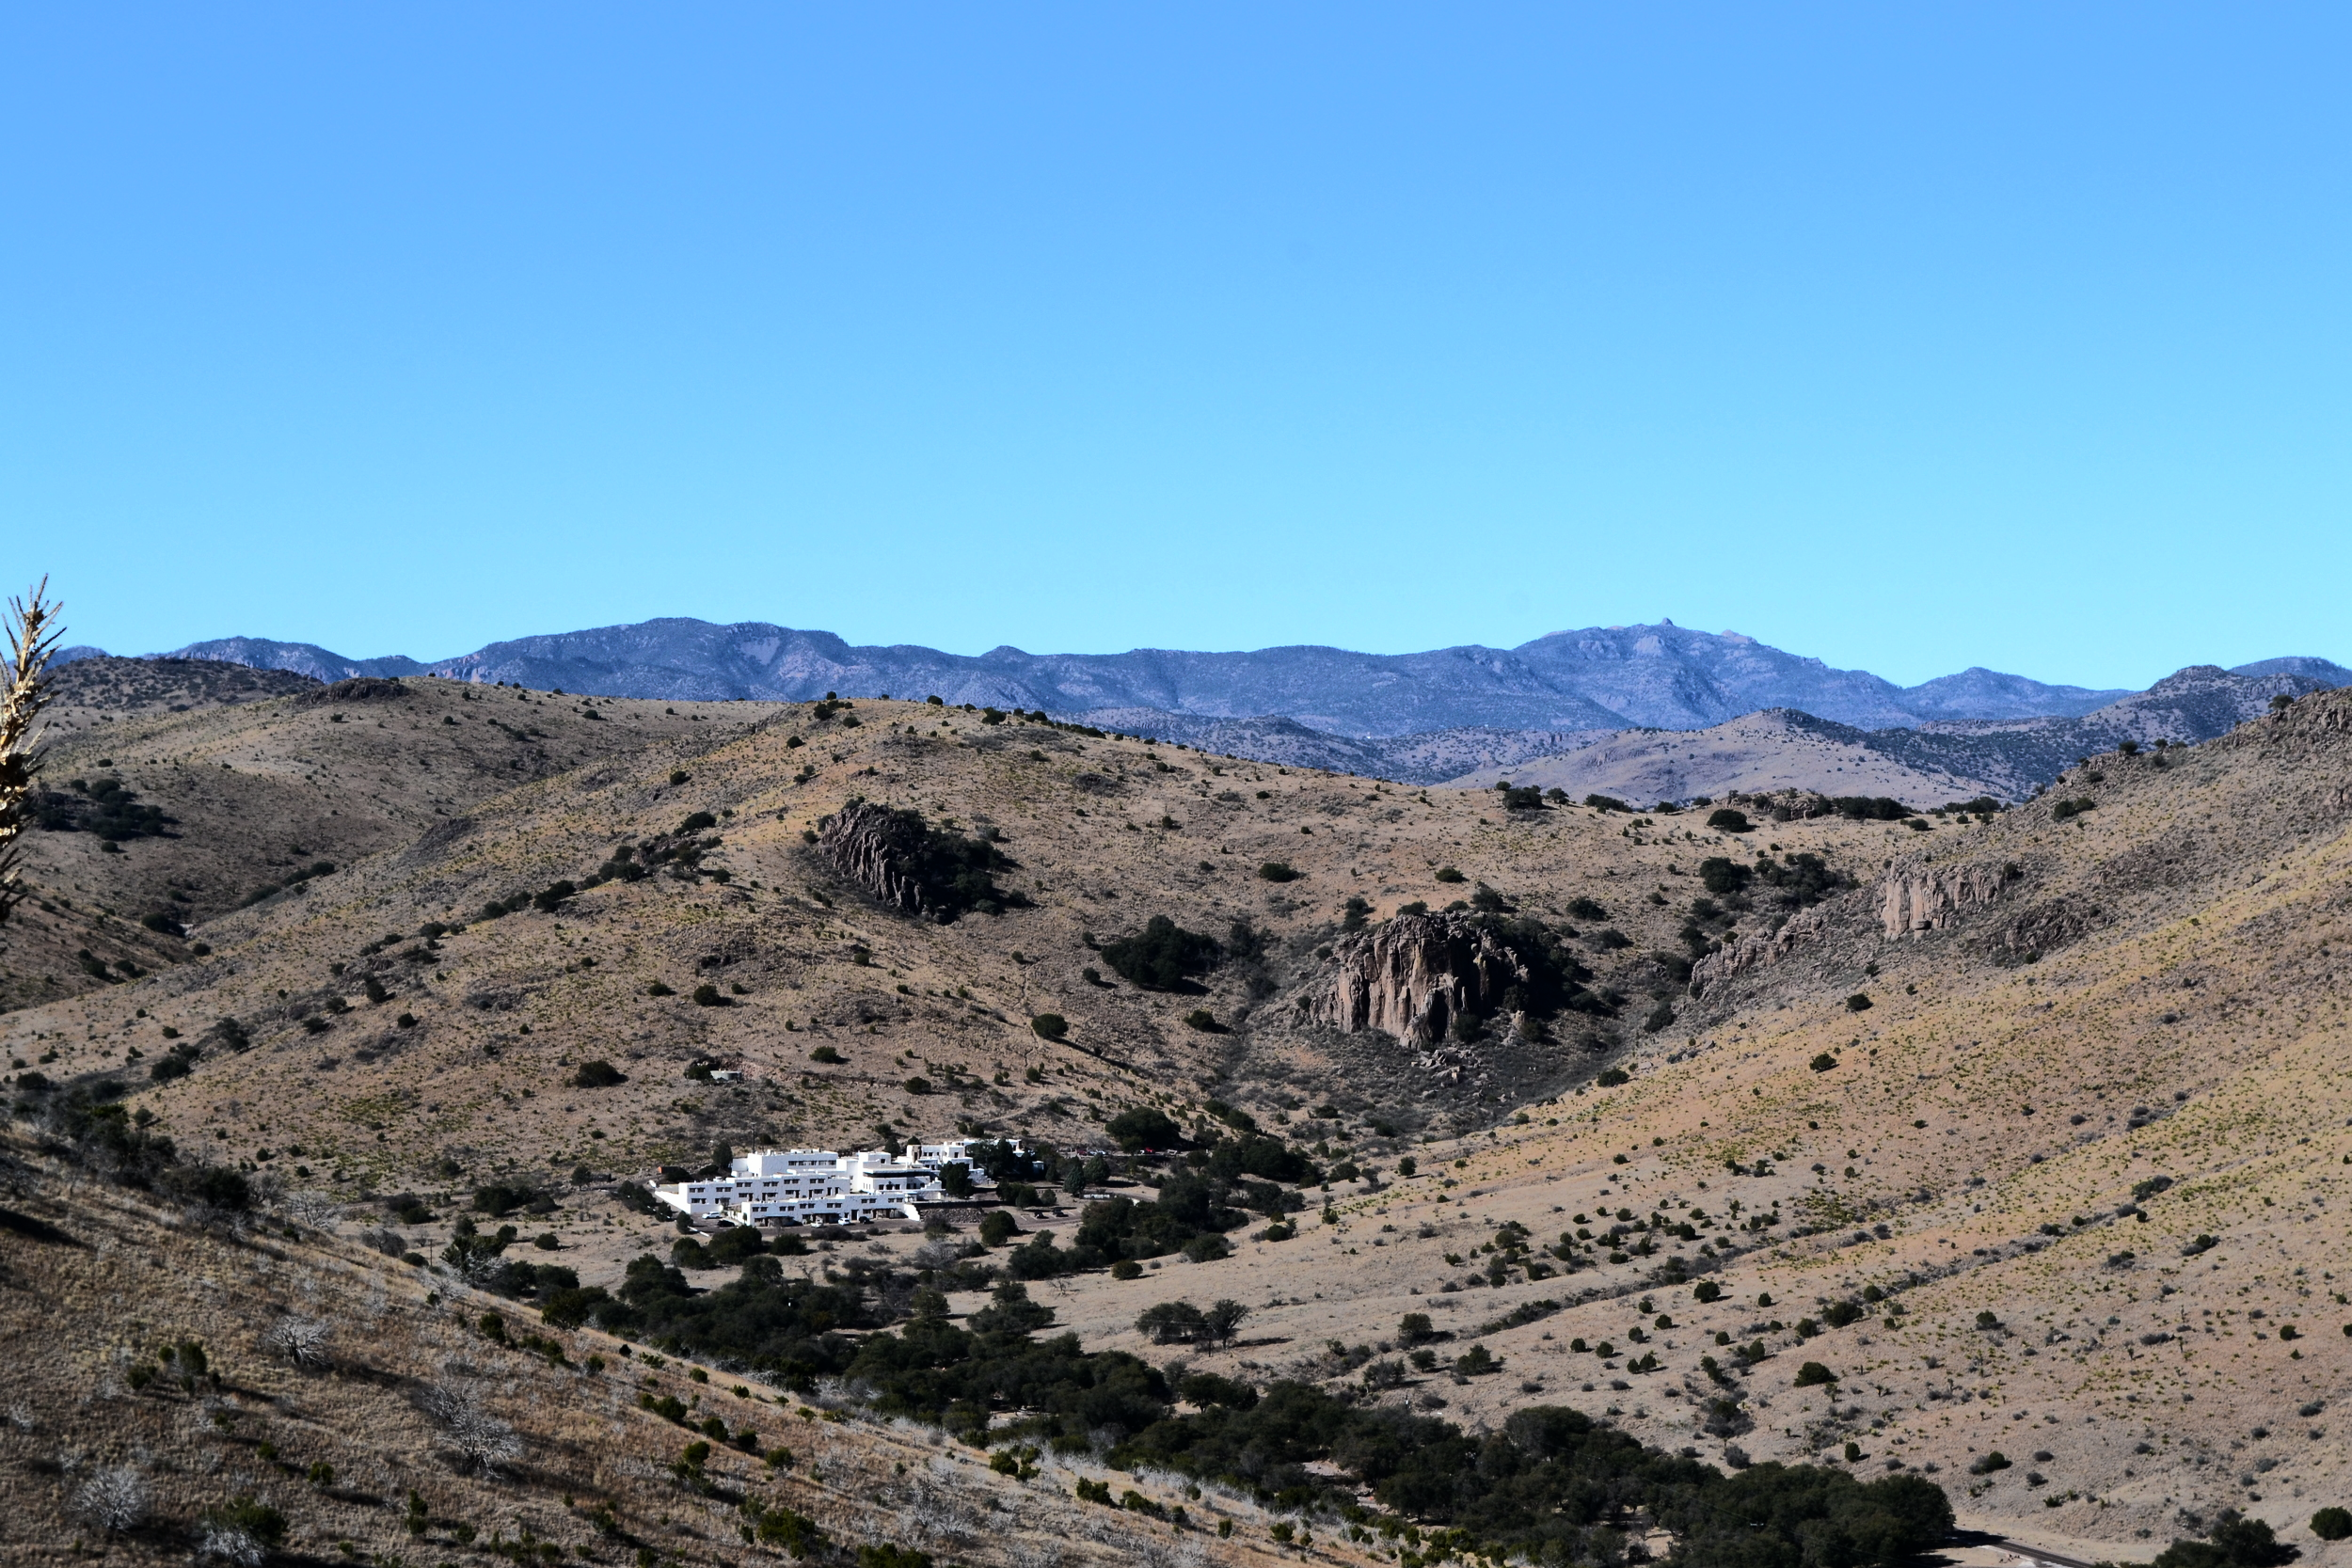 The Indian Lodge, seen here at the foot of the Davis Mountains, was built by the CCC and opened to the public in 1939.